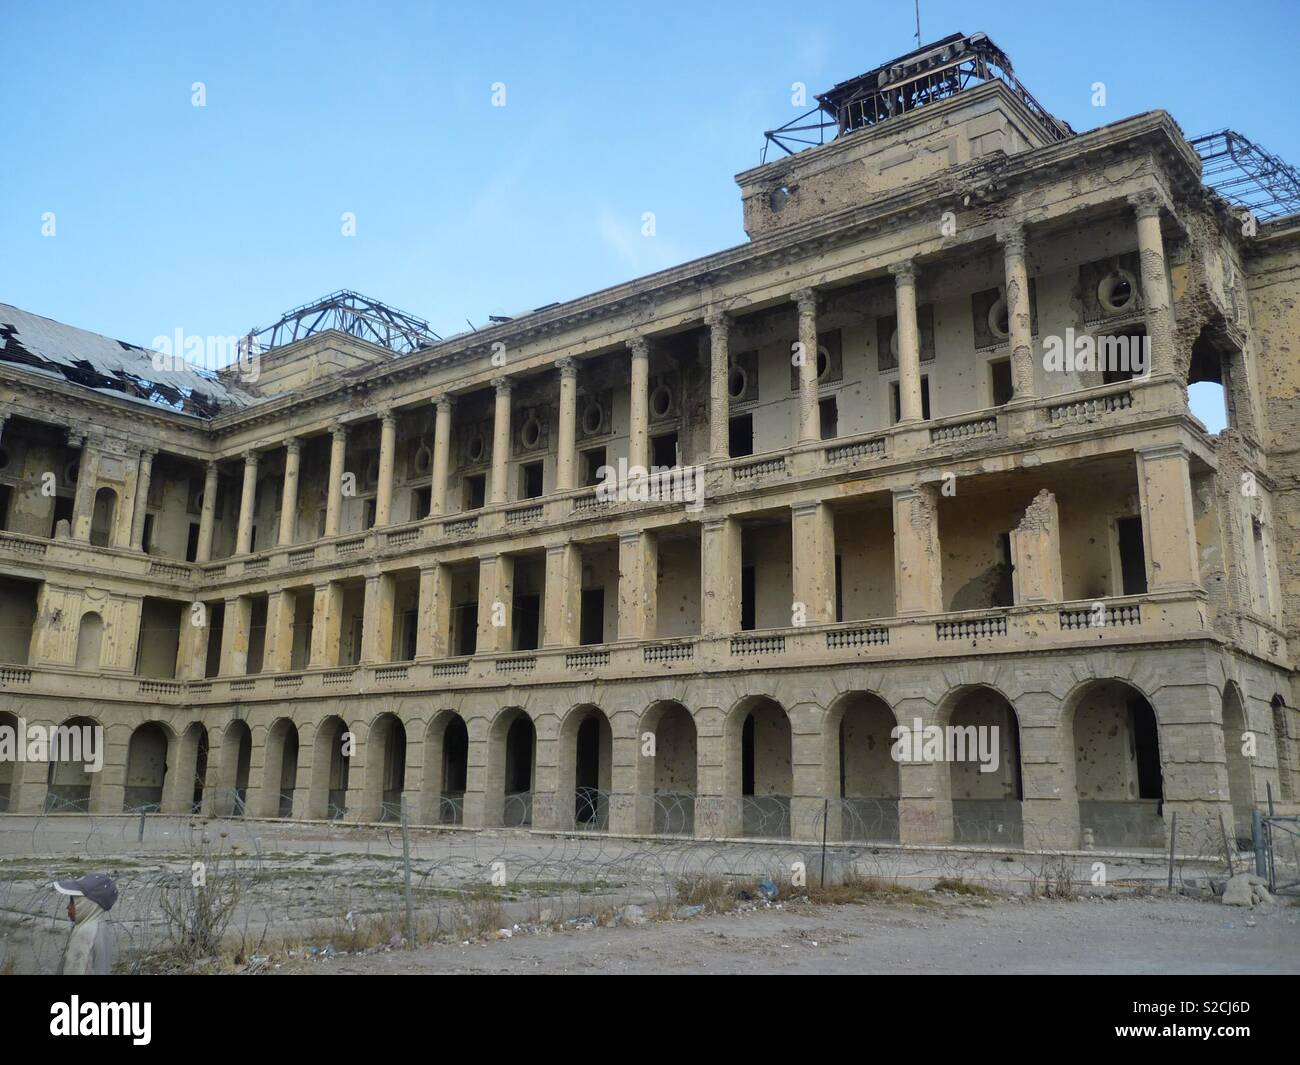 Queen's Palace, Kabul - Stock Image